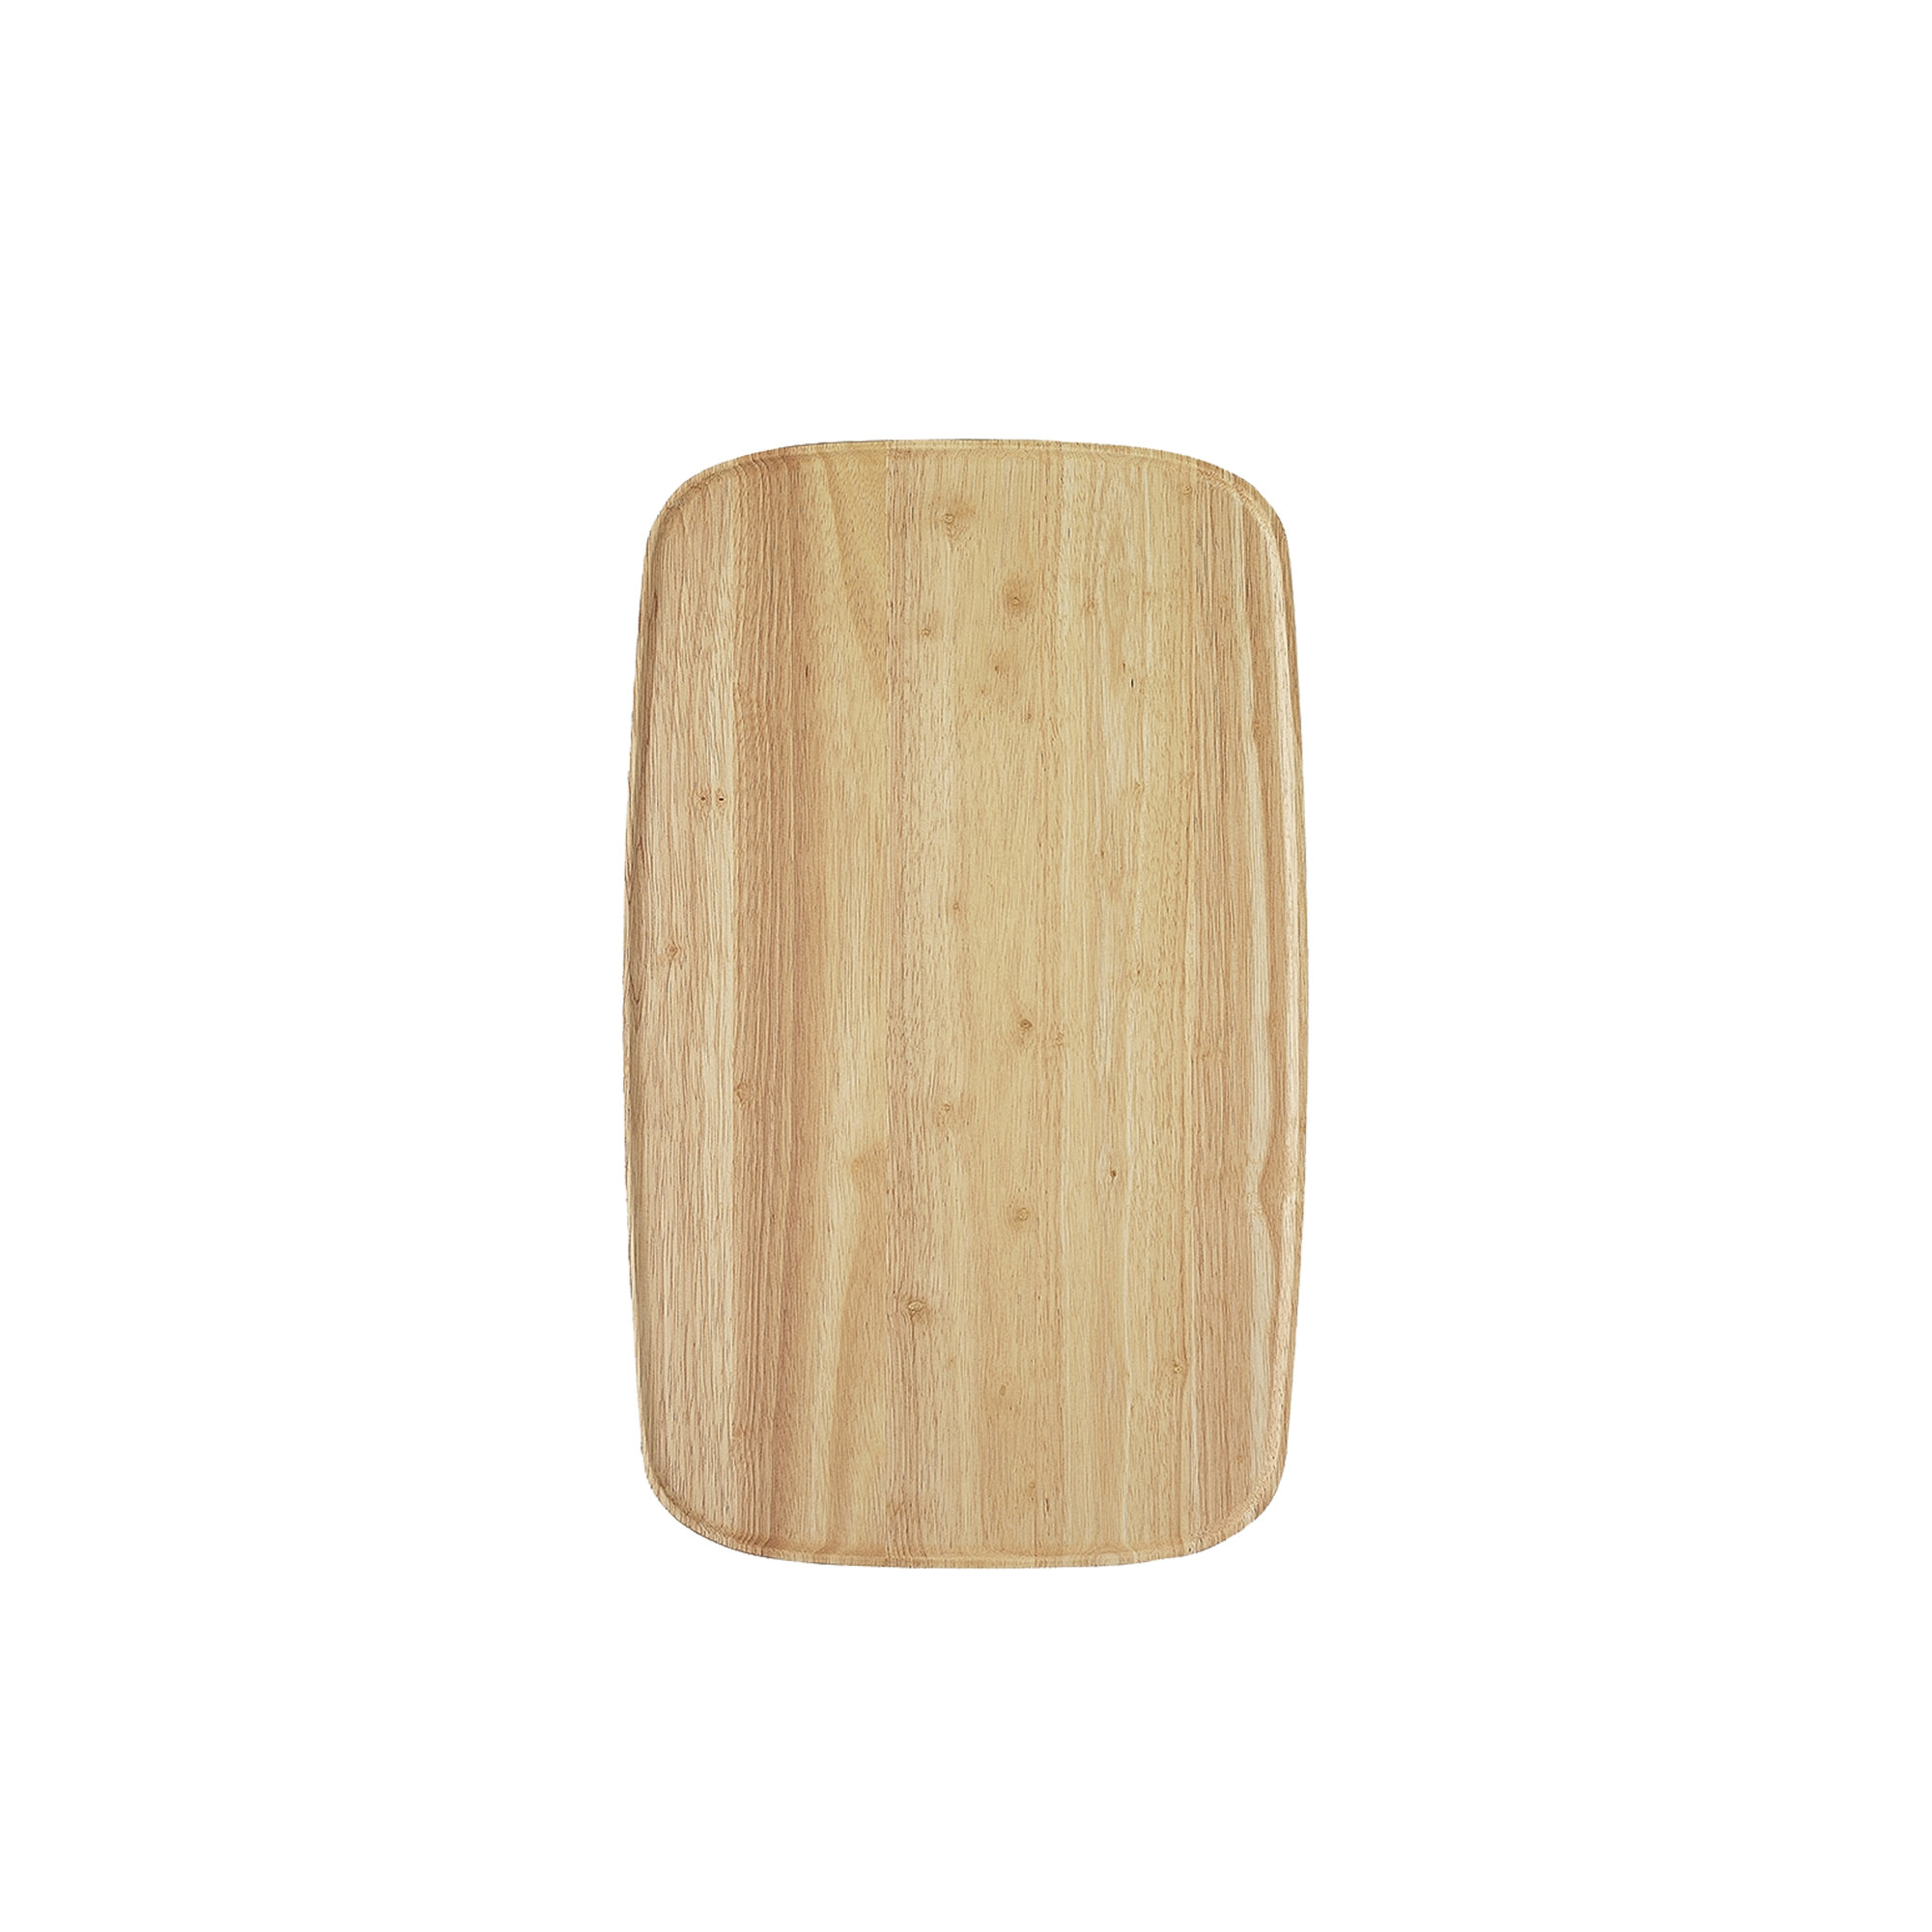 Ecology Alto Serving Board 56x34cm Timber